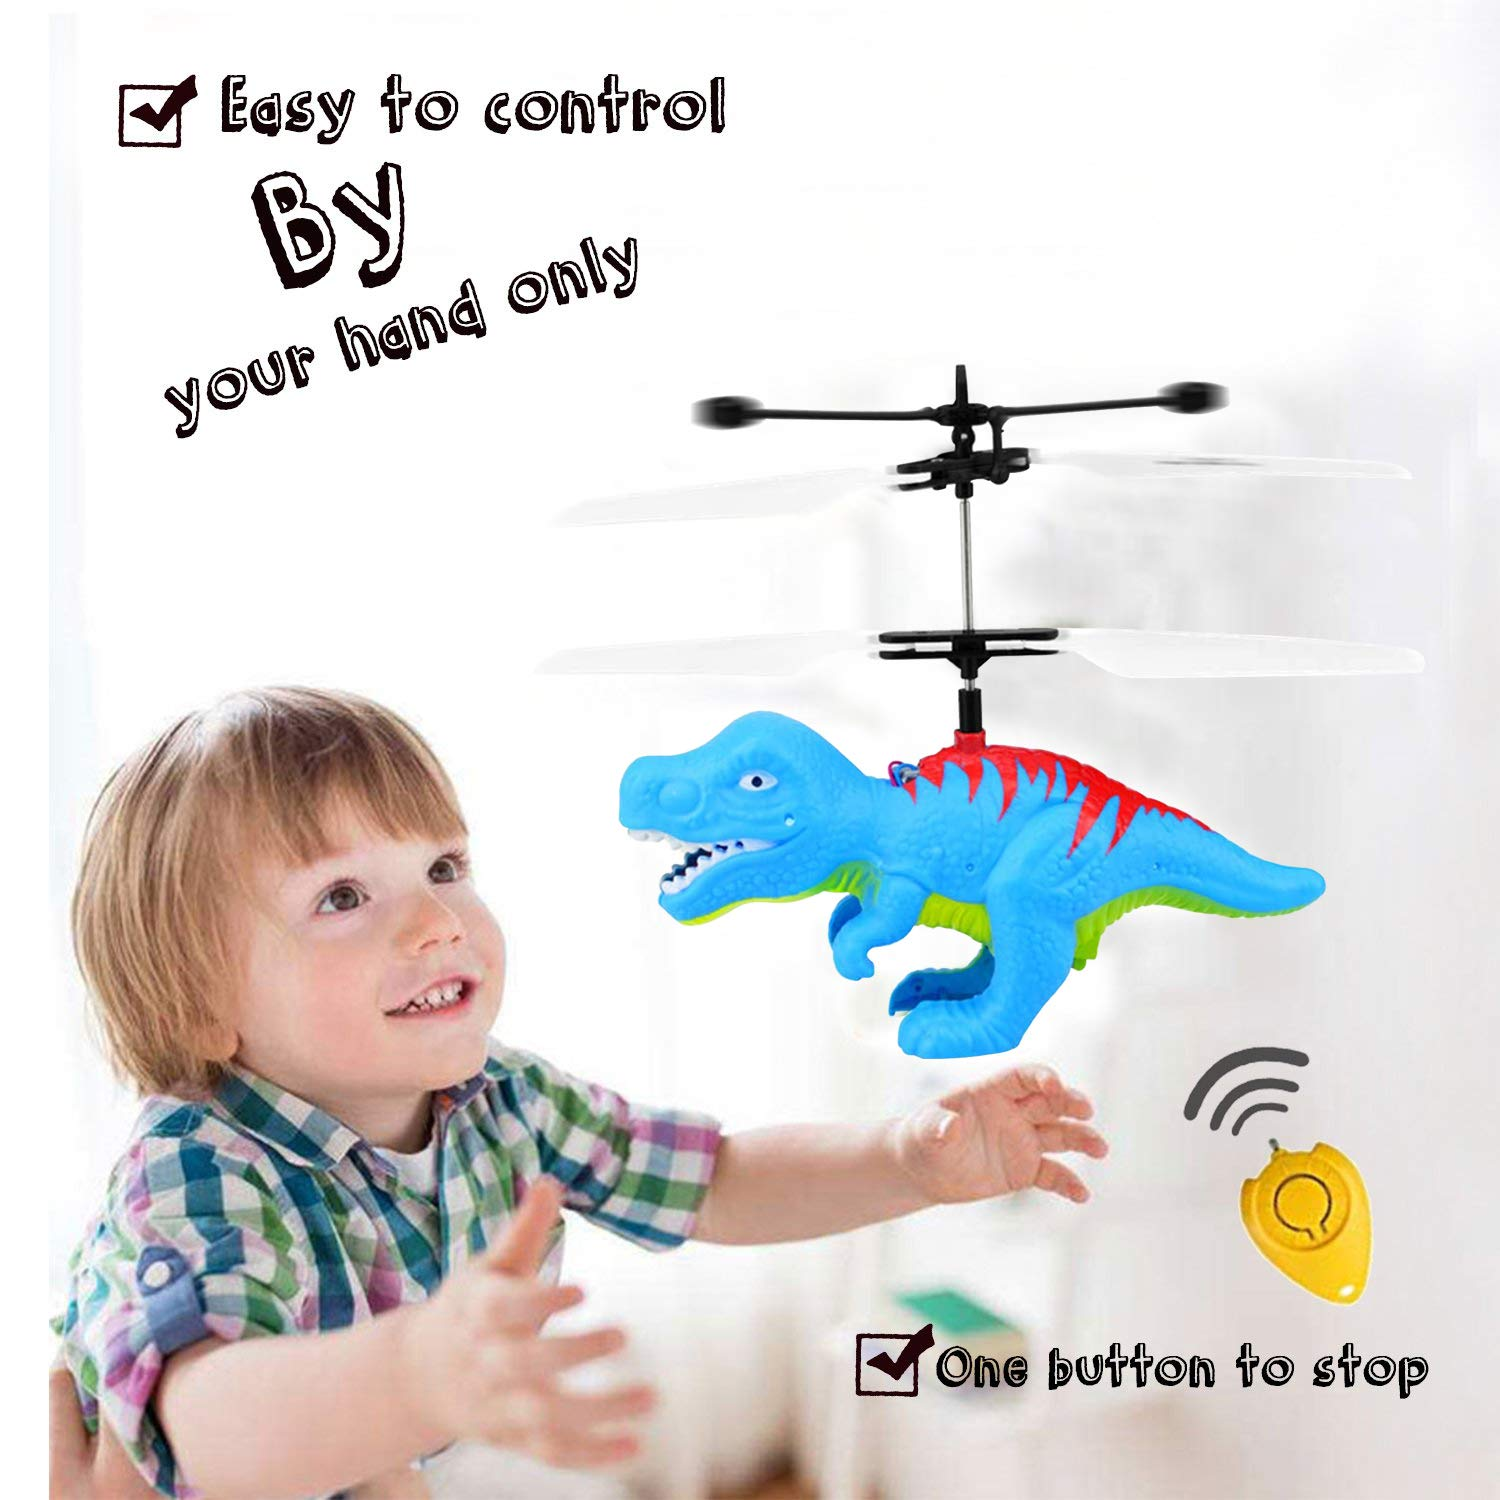 Funburg Flying Ball Dinosaur Toys,RC Drone LED Colorful Light Up Helicopter with Remote,Indoor Outdoor for 6 Year Old Kid,Infrared Induction Flying Toys Dinosaur Birthday Gifts for Boys Girls Kids by Funburg (Image #2)